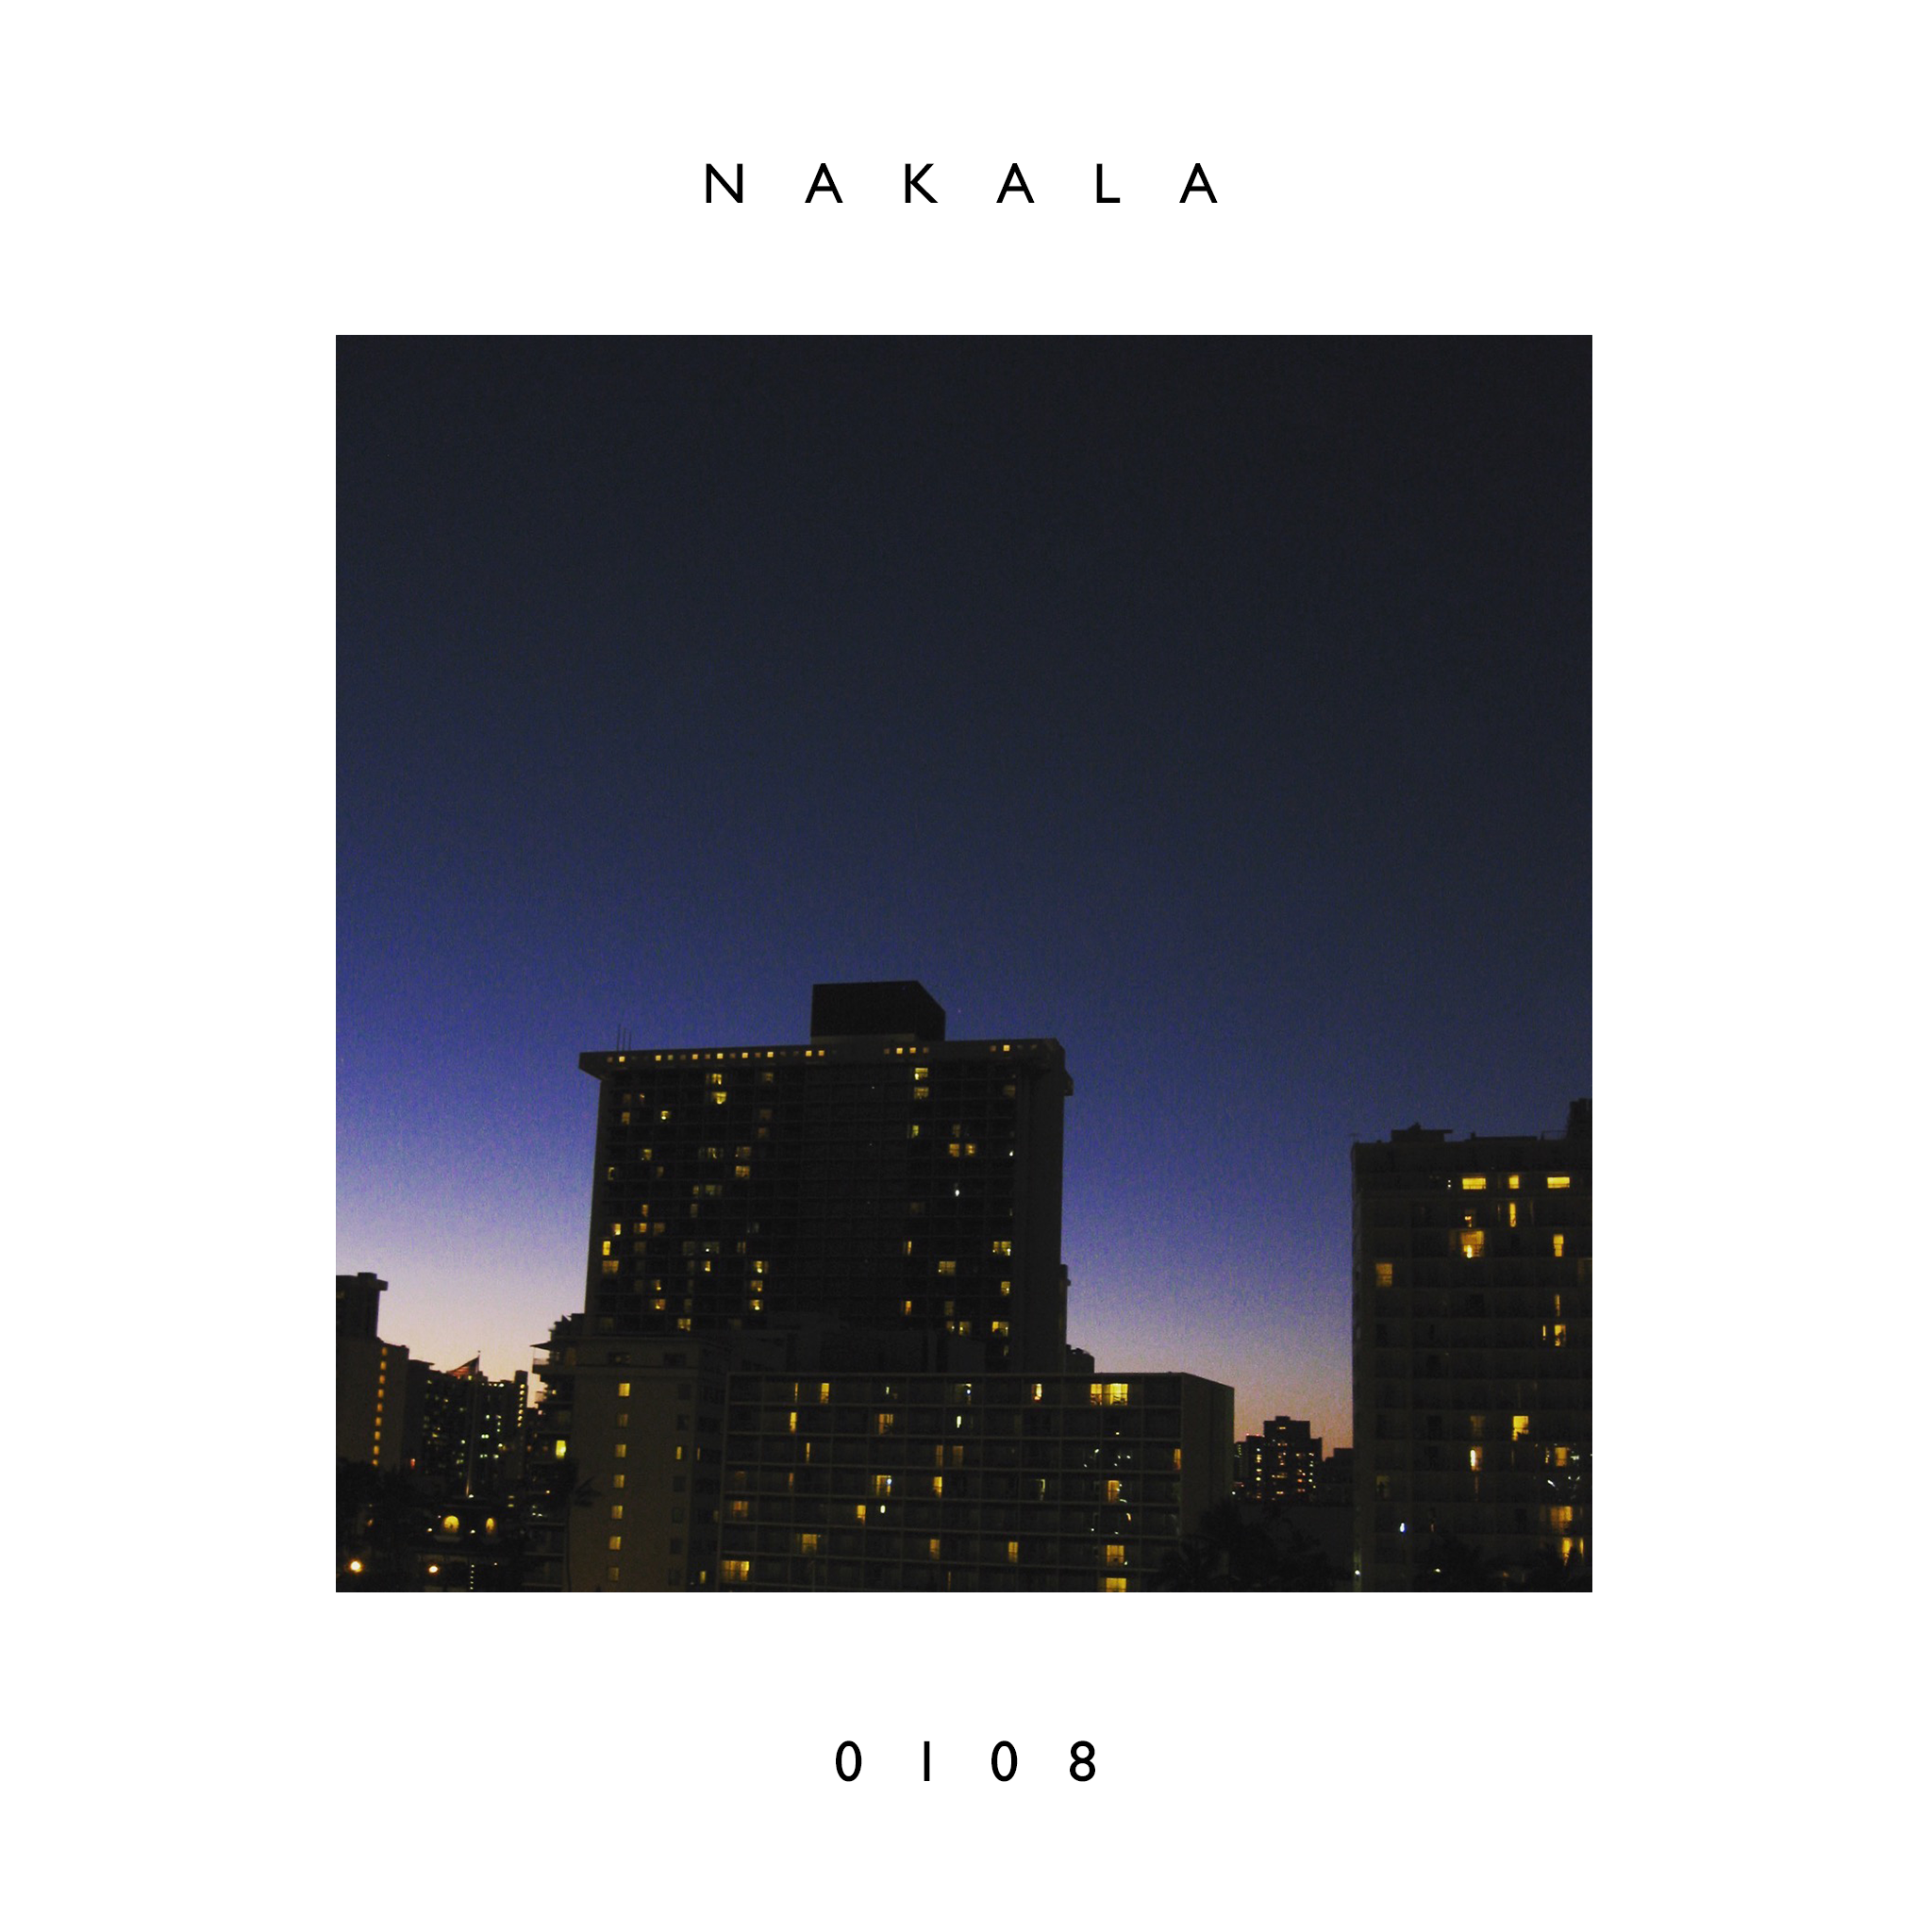 nakala 0108 artwork final.png